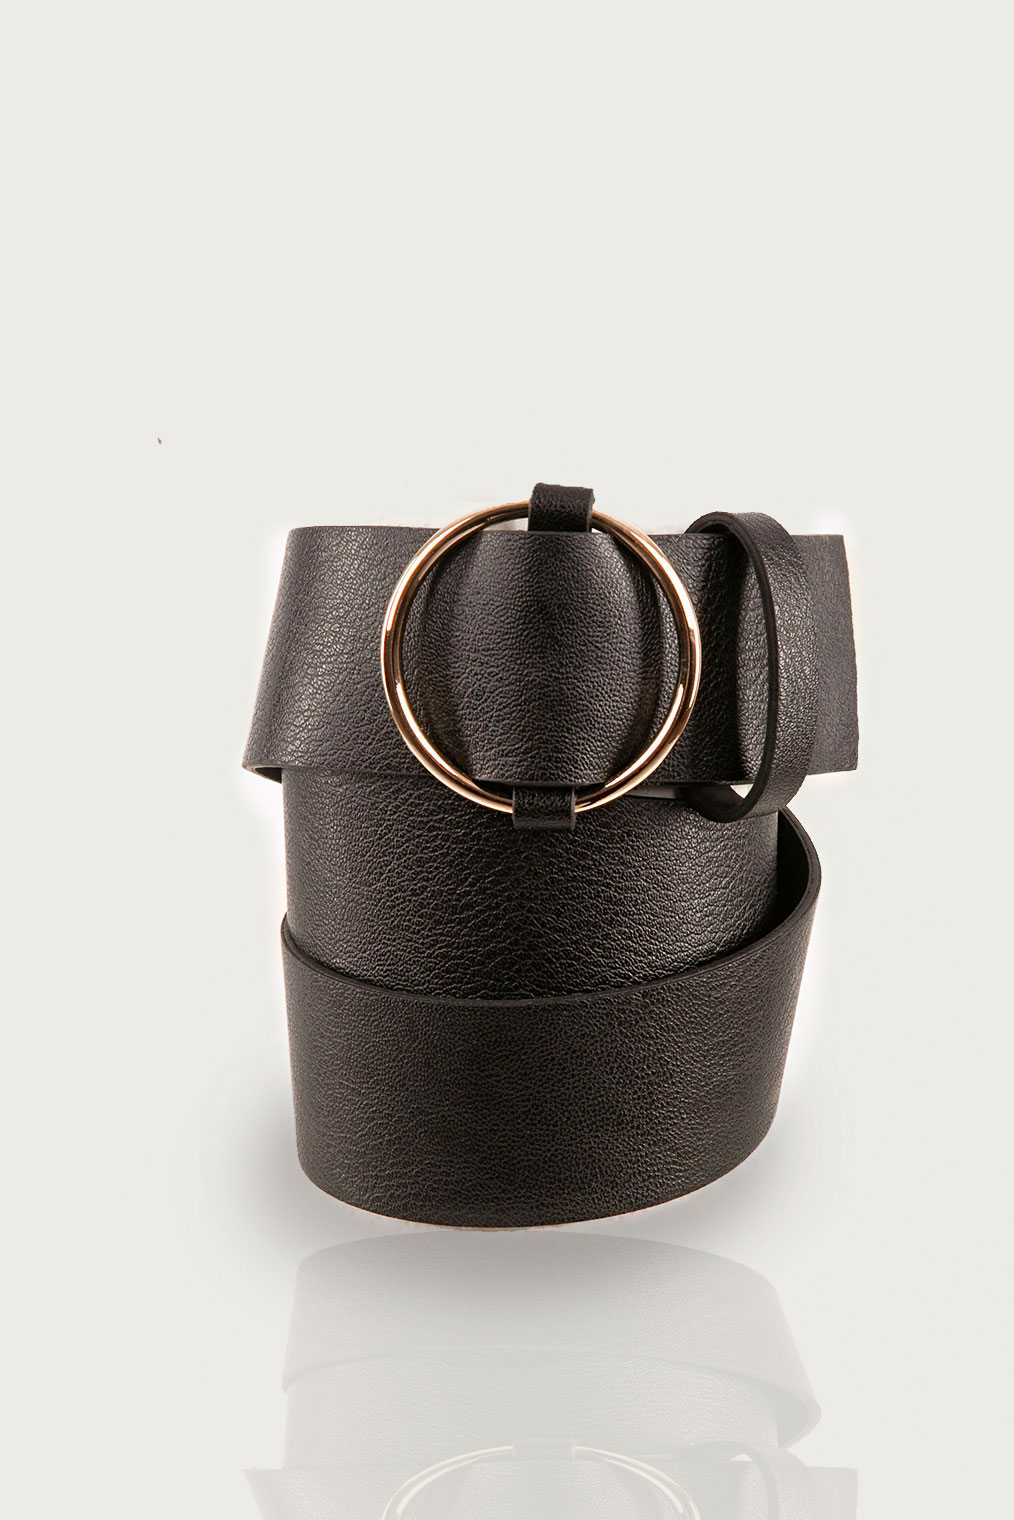 Women's Round Buckle Artificial Leather Belt